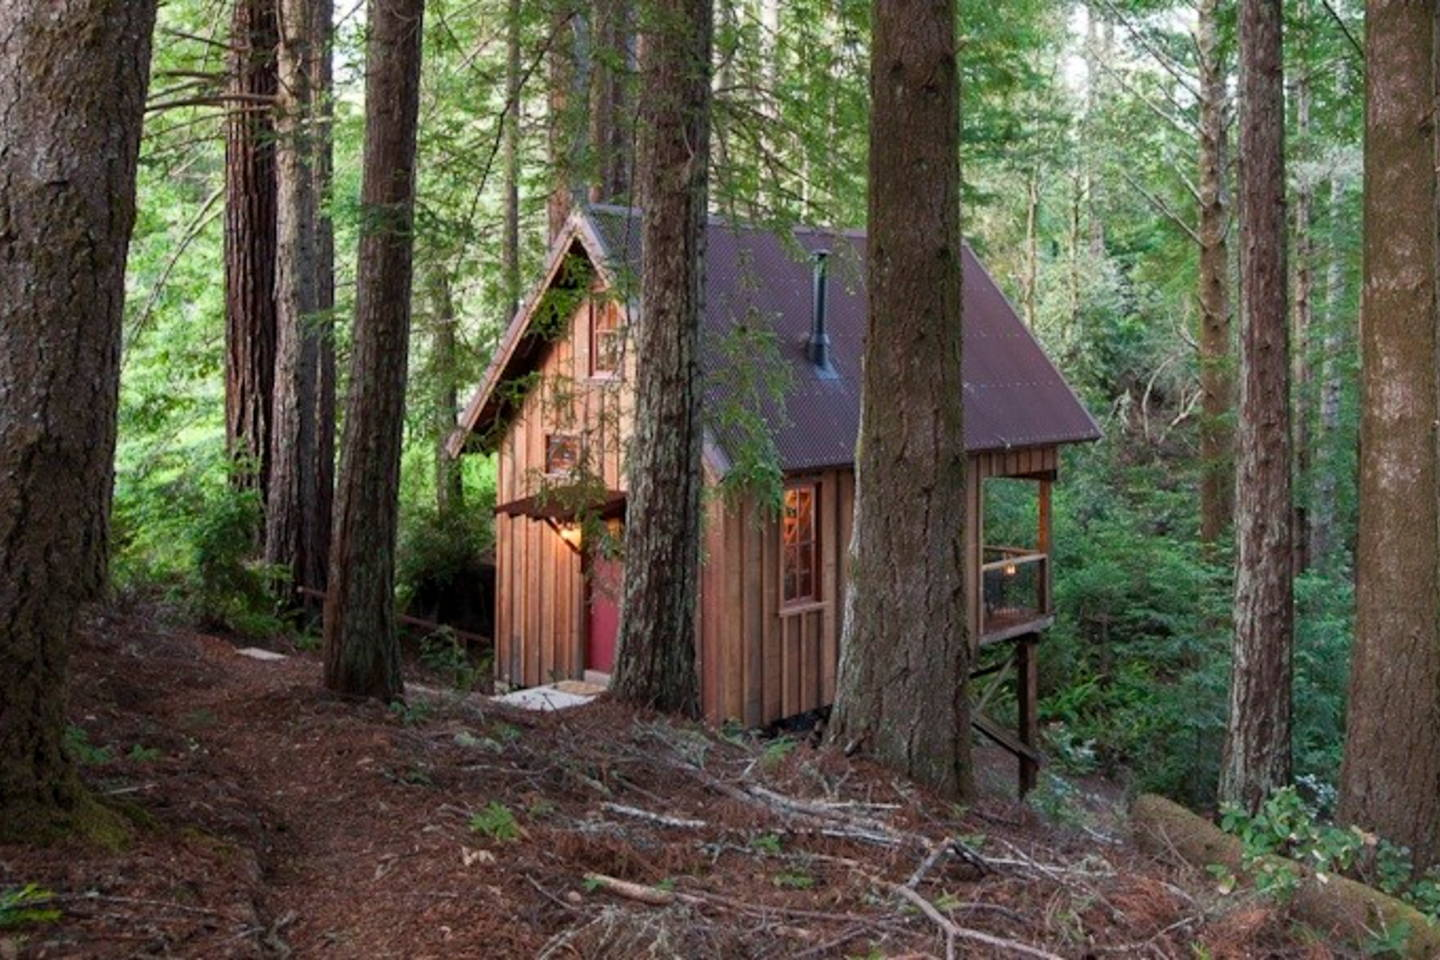 The Owl Tree cabin Mendocino, Anderson Valley